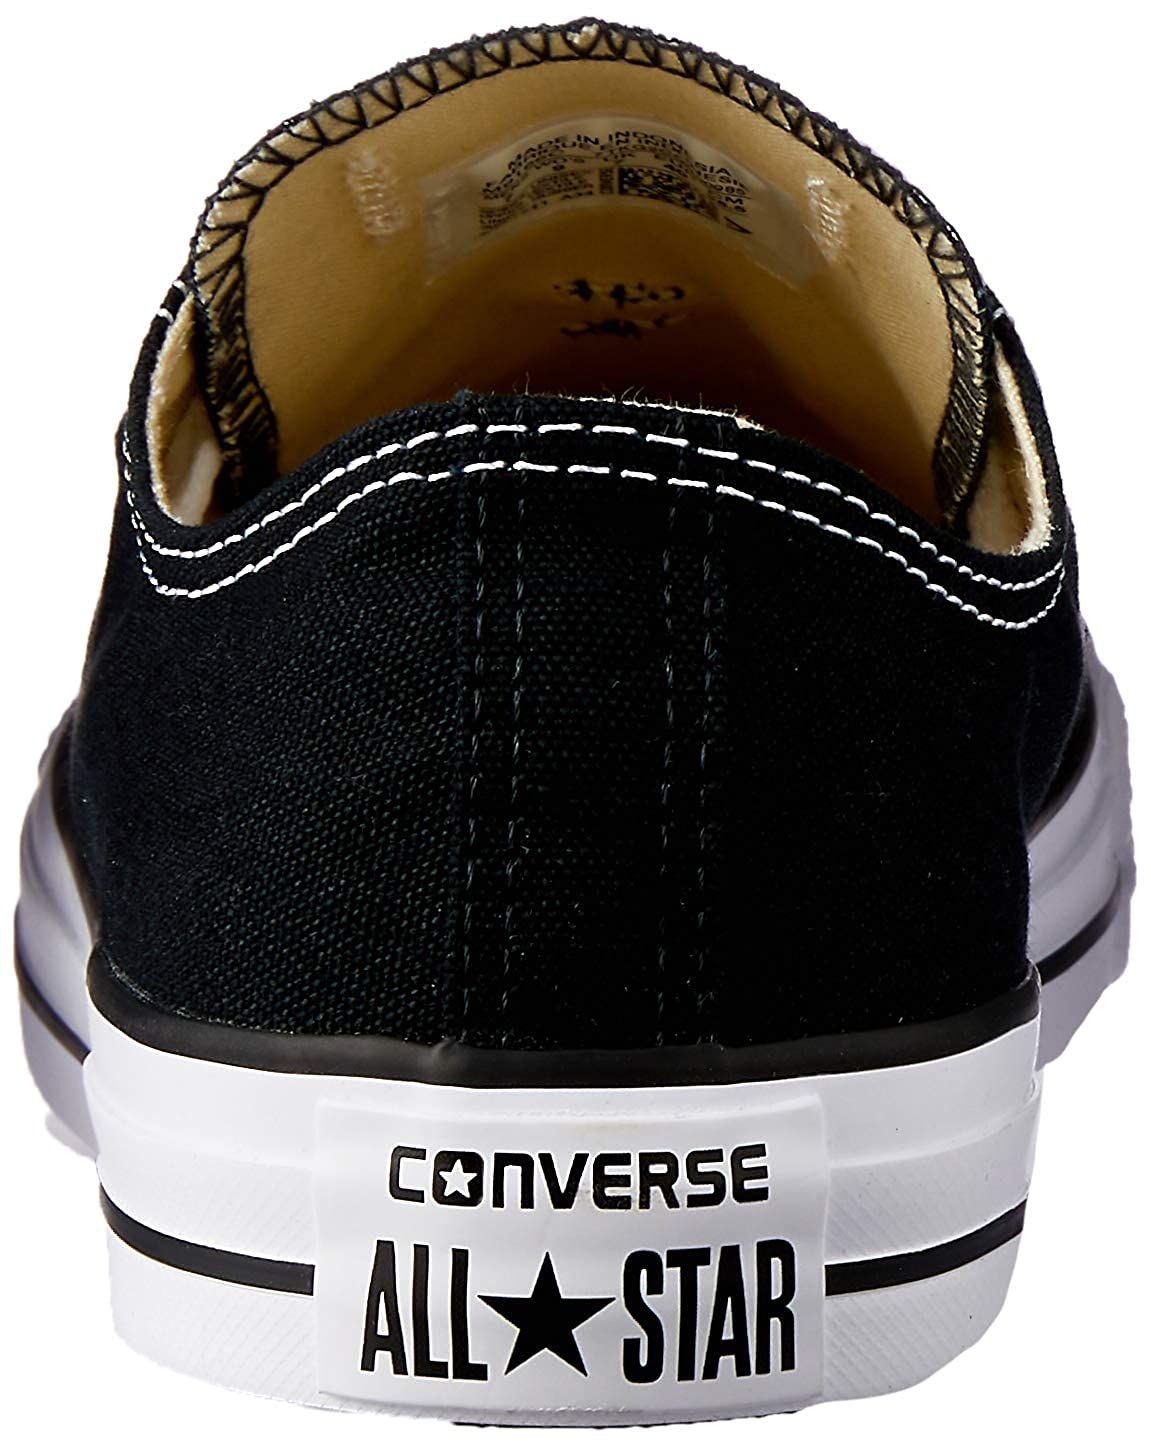 49e9f196dc8 Converse Chuck Taylor All Star, Unisex-Adult's: Amazon.co.uk: Shoes & Bags